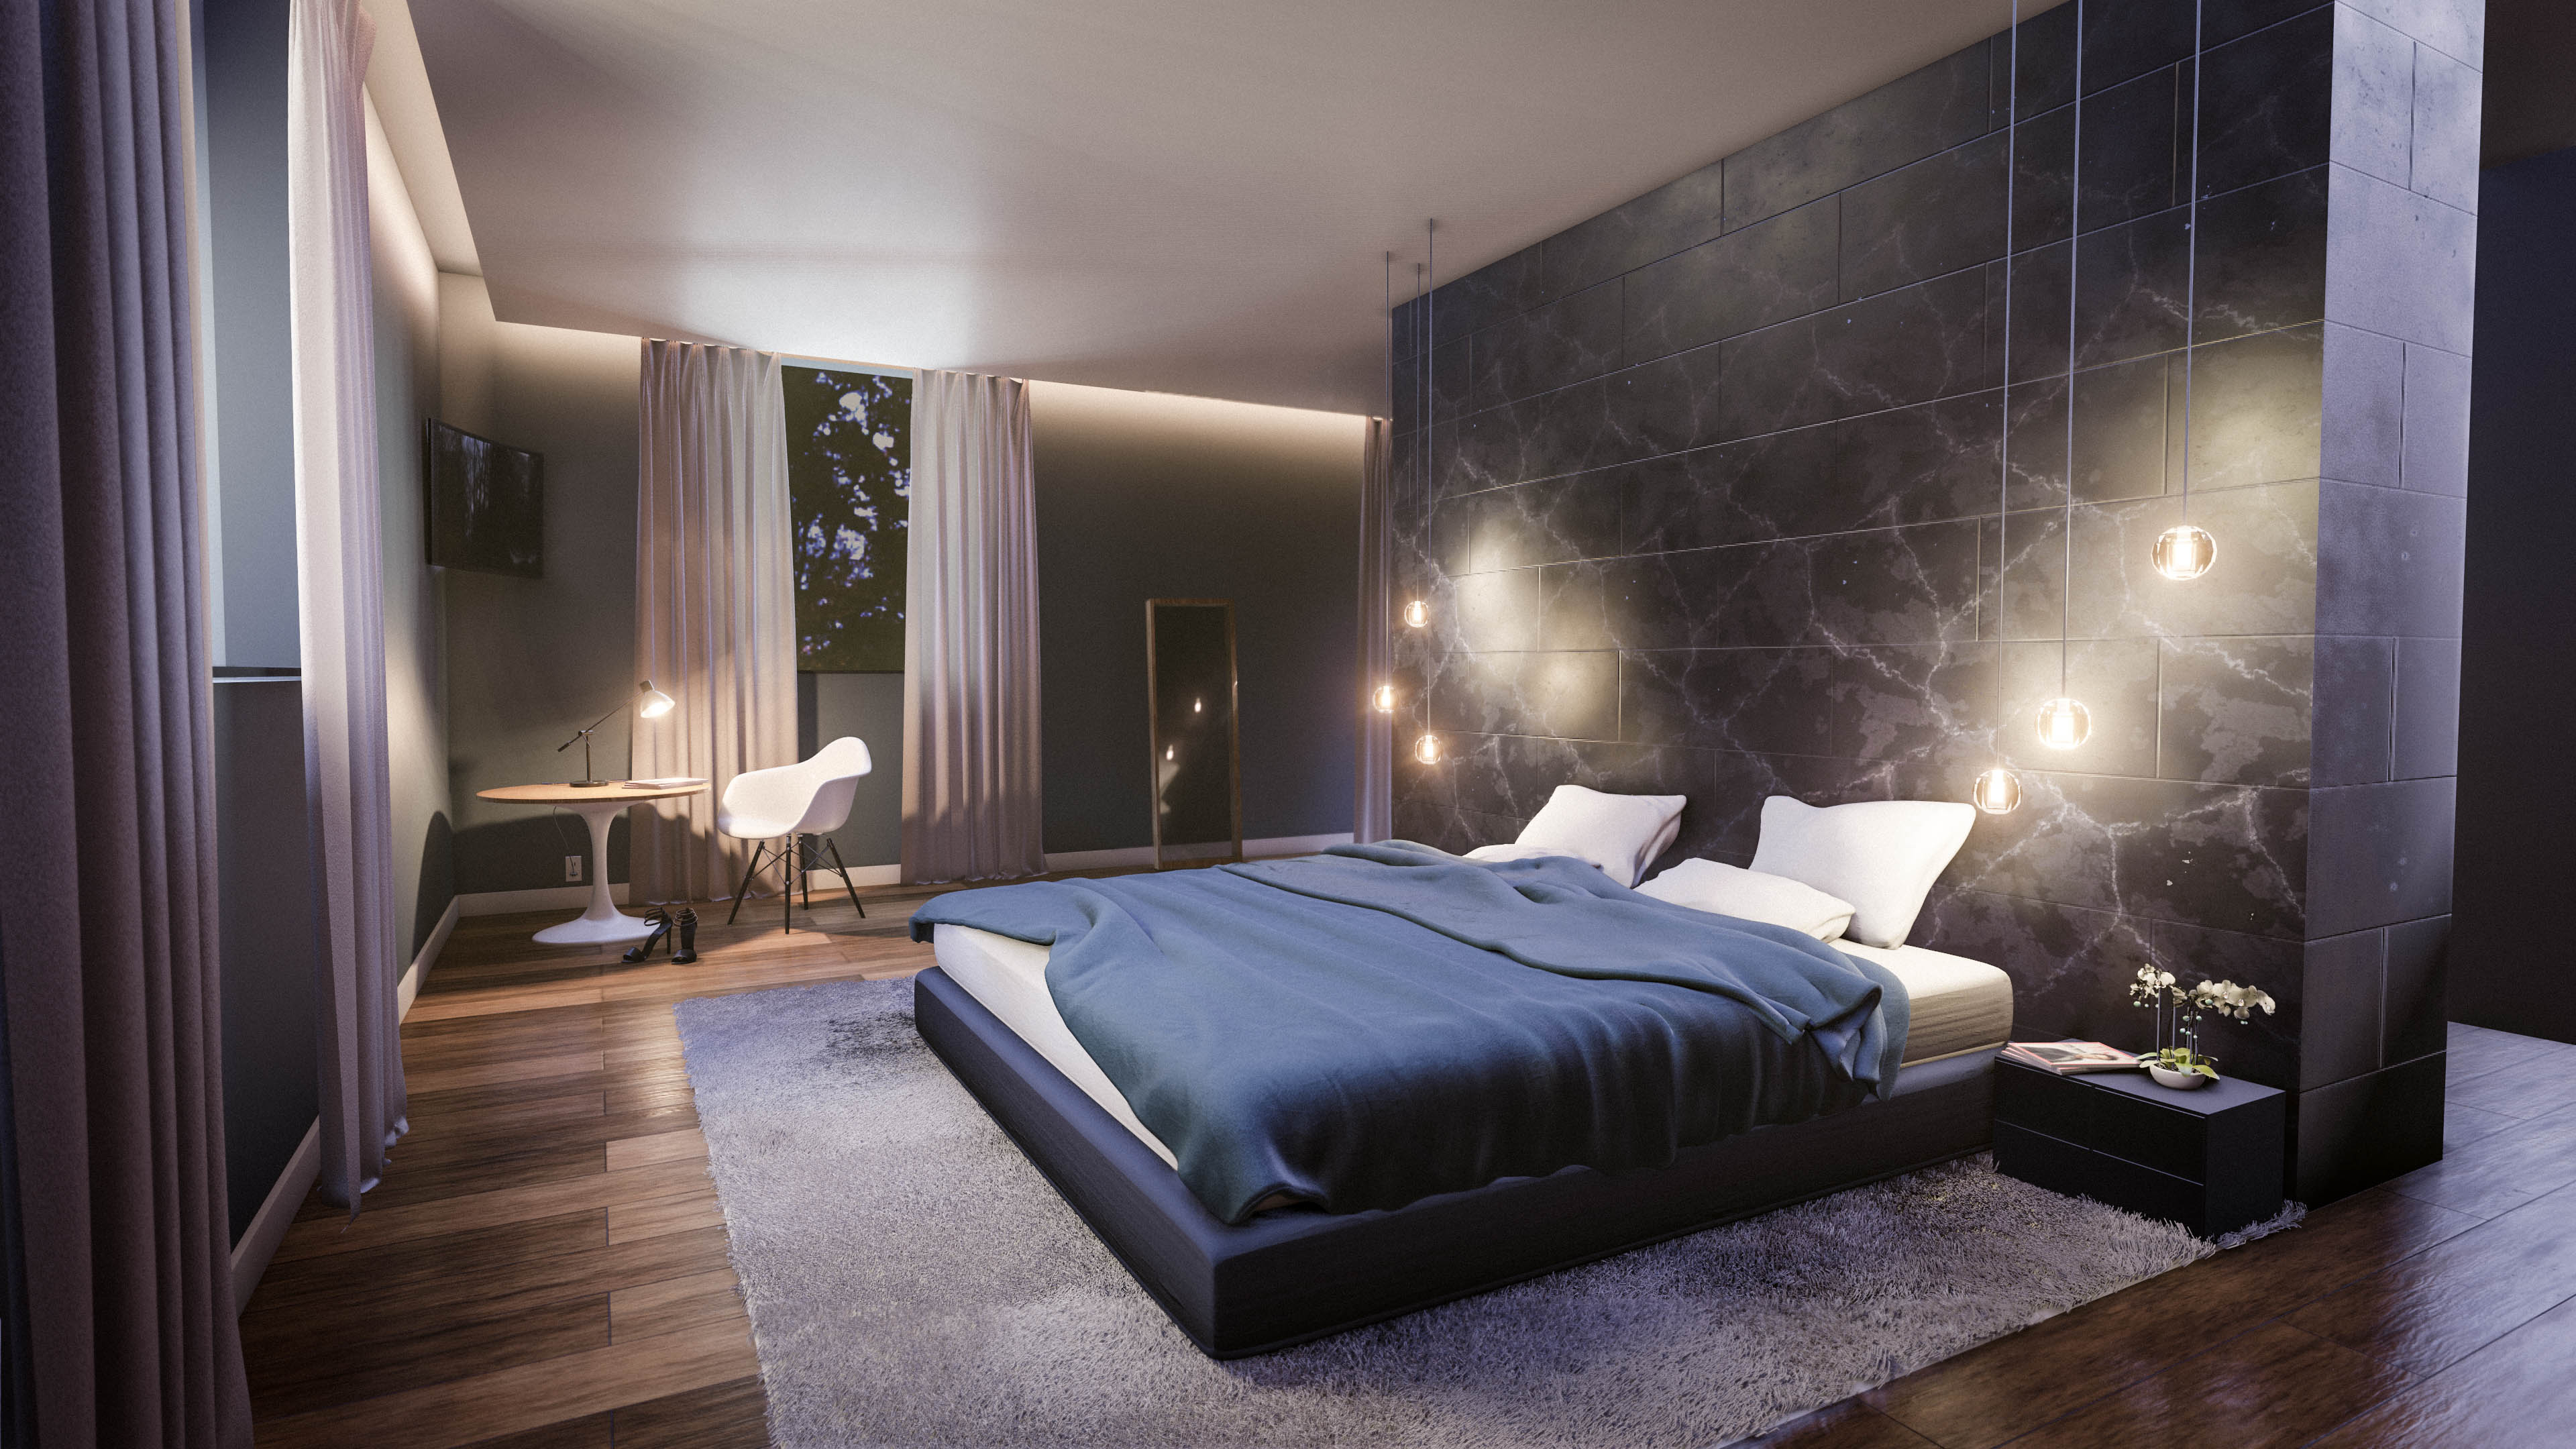 Create A Modern Bedroom Interior In Blender In 35 Minutes pertaining to 13 Clever Concepts of How to Make Modern Bedroom Pictures